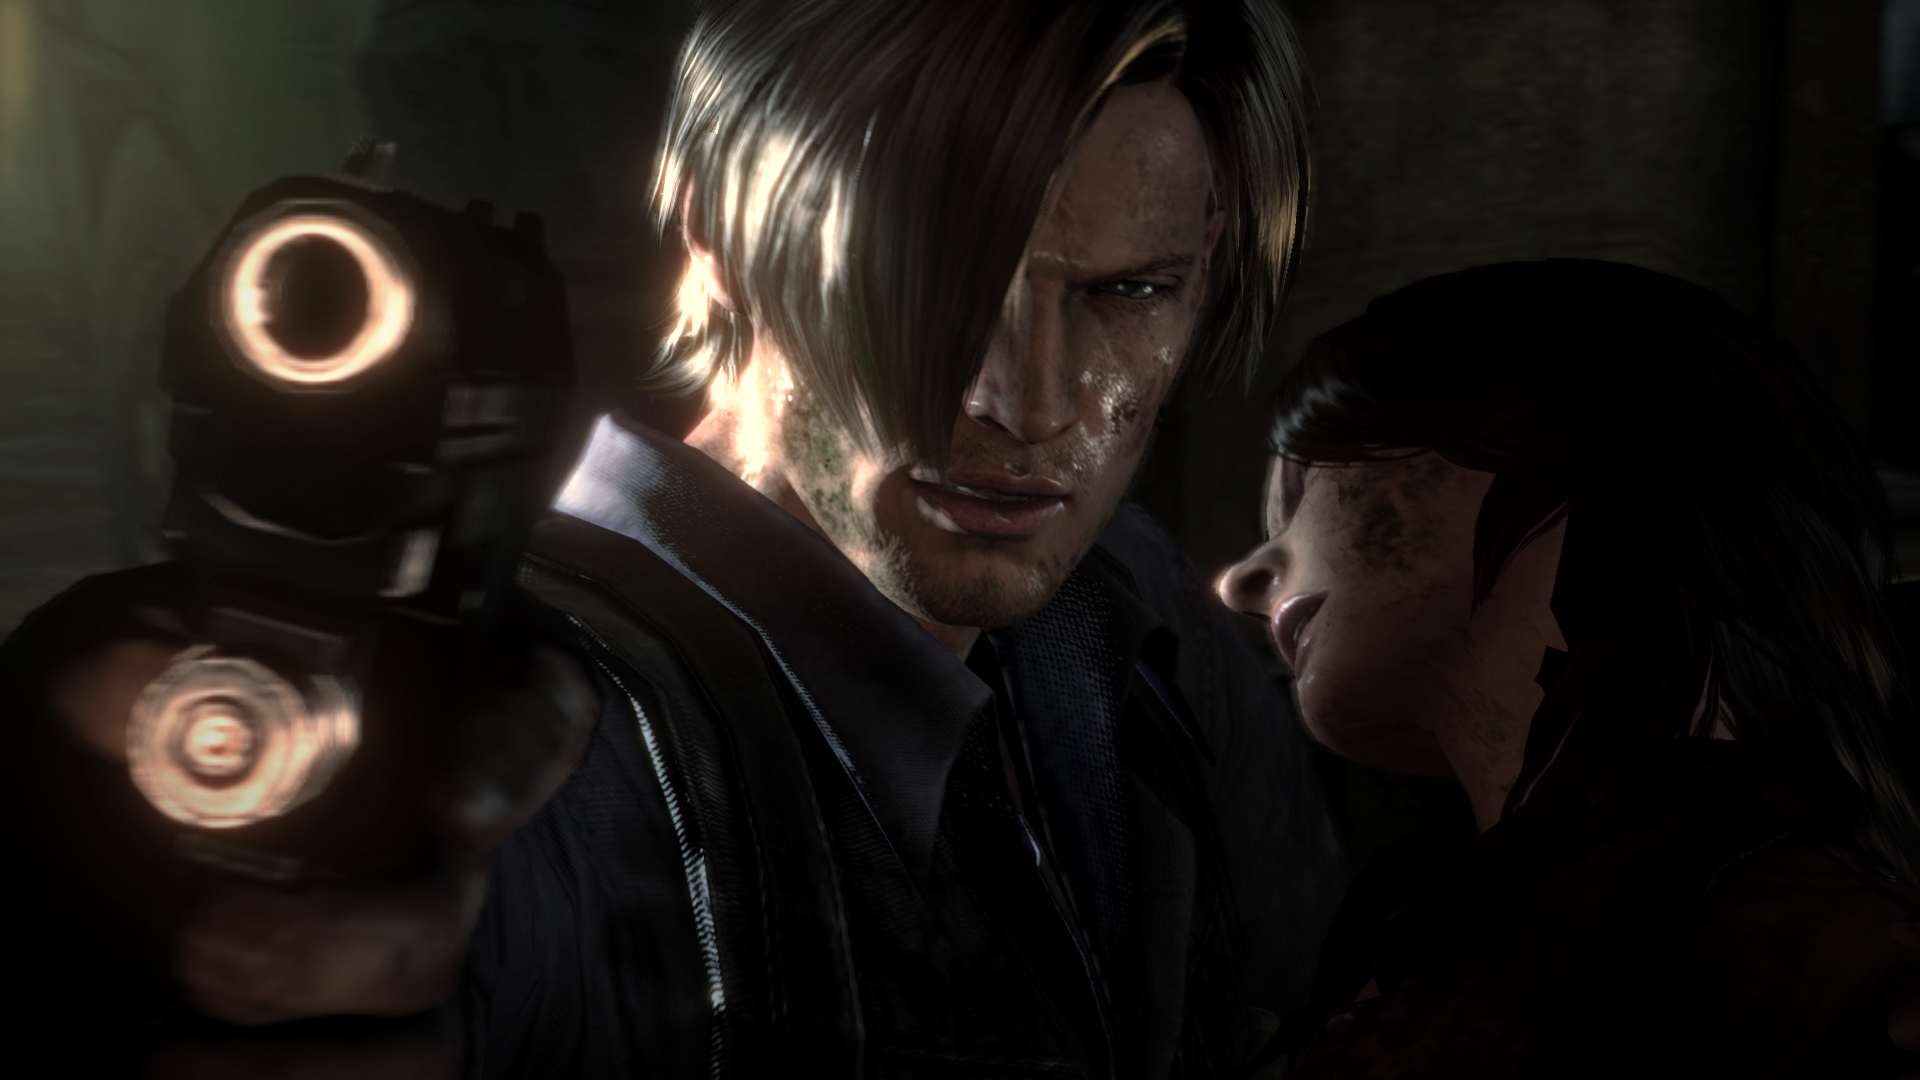 Resident Evil 6 5 4 Launching On Playstation 4 And Xbox One This